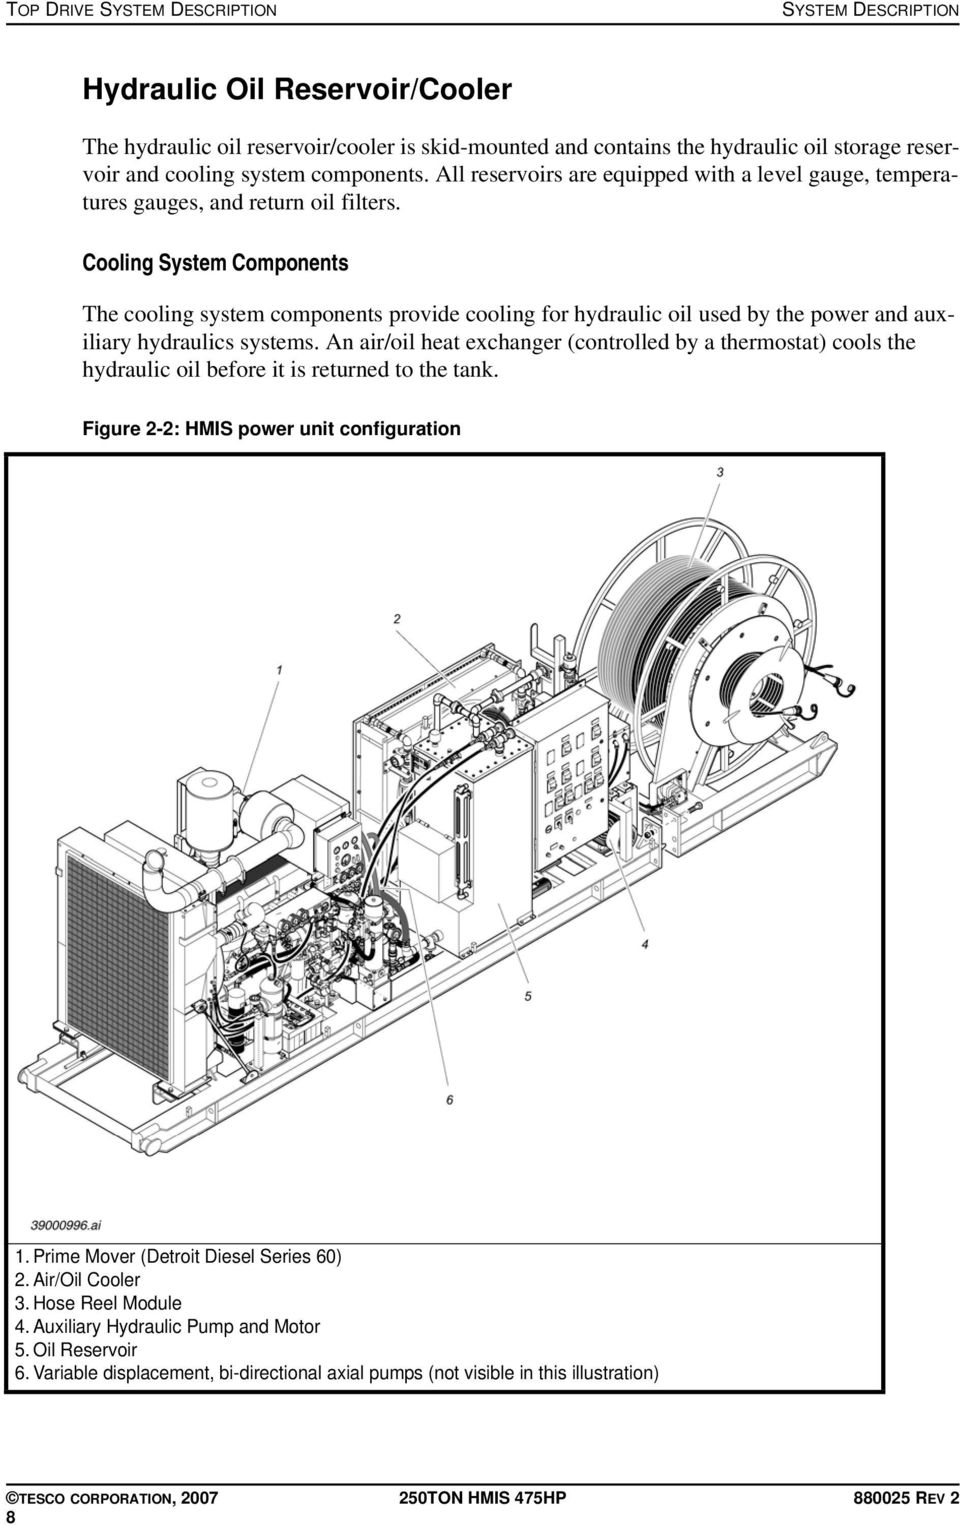 Cooling System Components The cooling system components provide cooling for  hydraulic oil used by the power. 15 SYSTEM DESCRIPTION TOP DRIVE ...